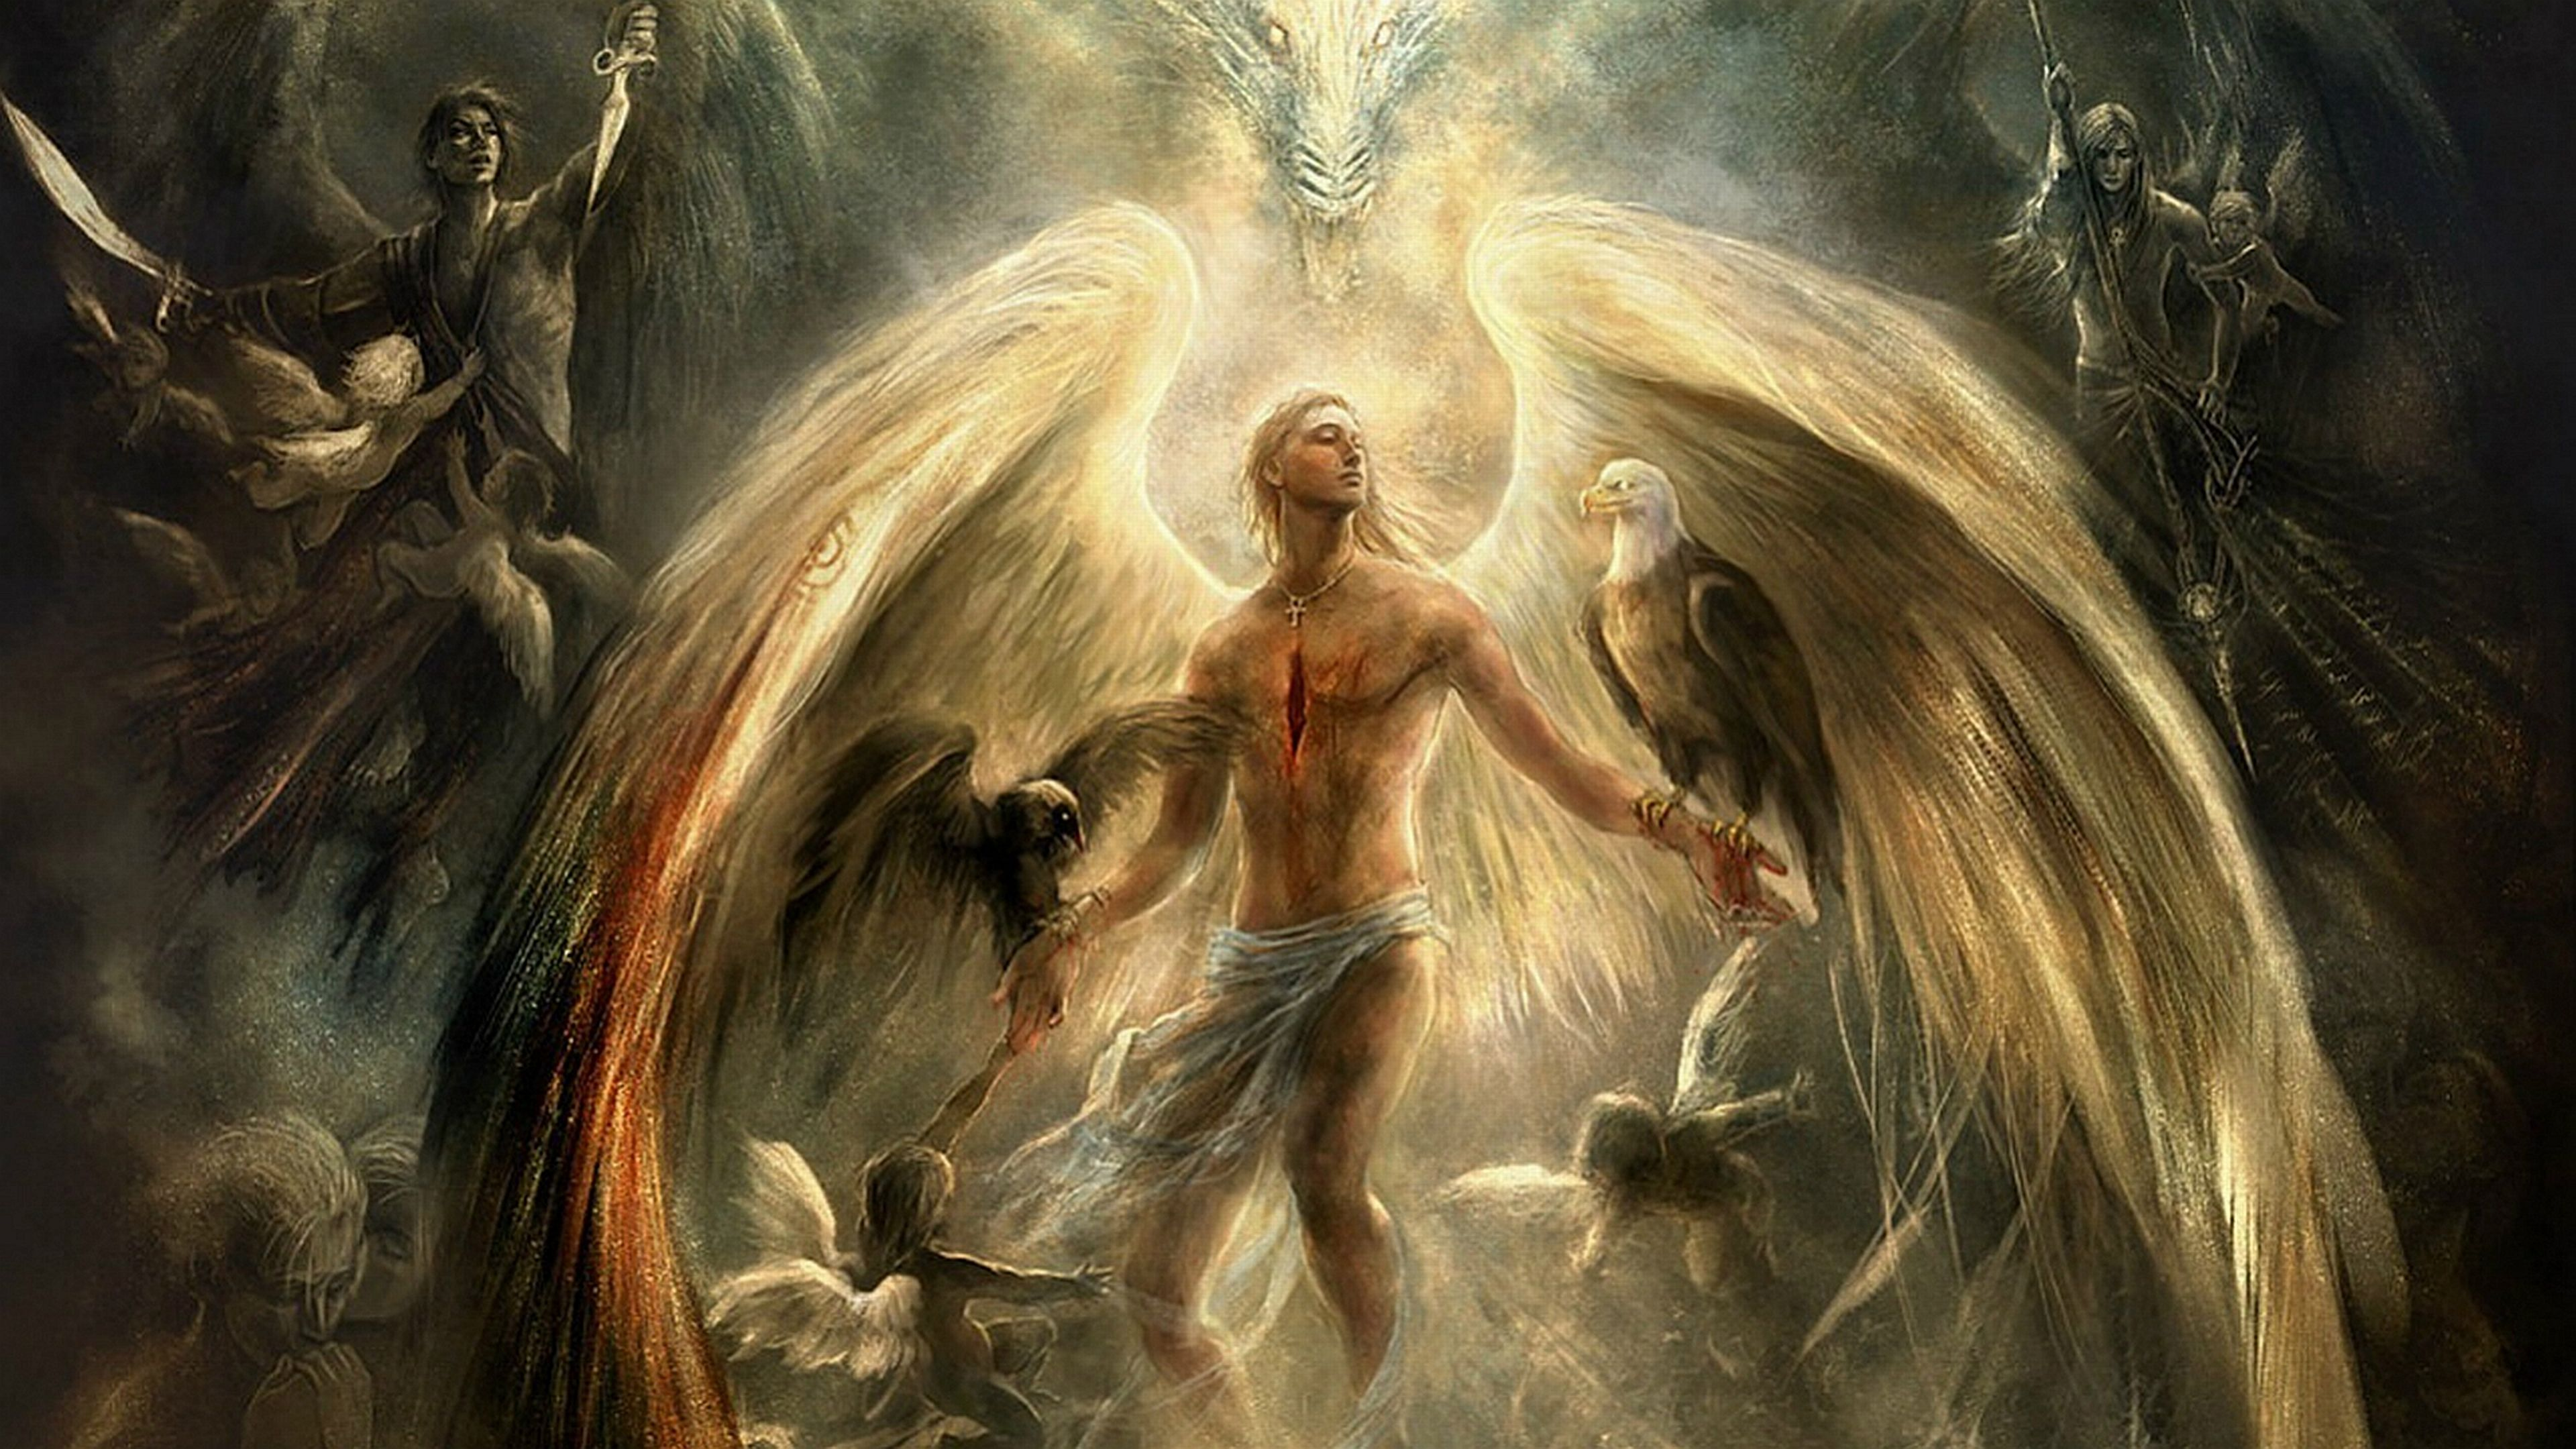 220 Angel Warrior HD Wallpapers | Backgrounds - Wallpaper Abyss